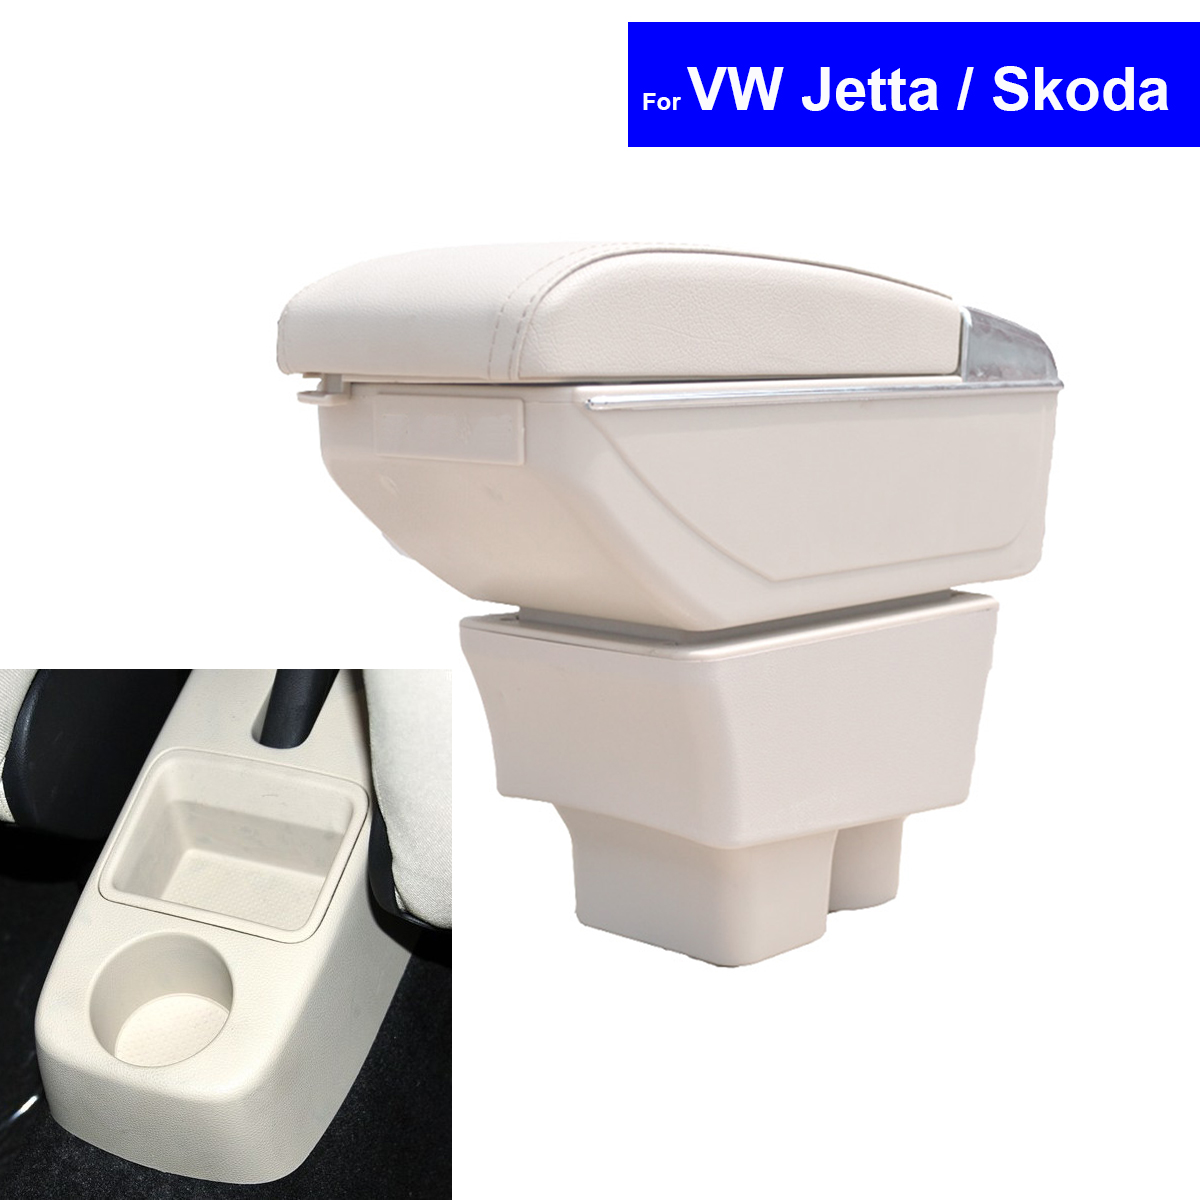 Leather Car Center Console Armrests Storage Box for VW Jetta / Skoda Superb Fabia Octavia 2008~2013 2014 2015 2016 Free Shipping car usb sd aux adapter digital music changer mp3 converter for skoda octavia 2007 2011 fits select oem radios